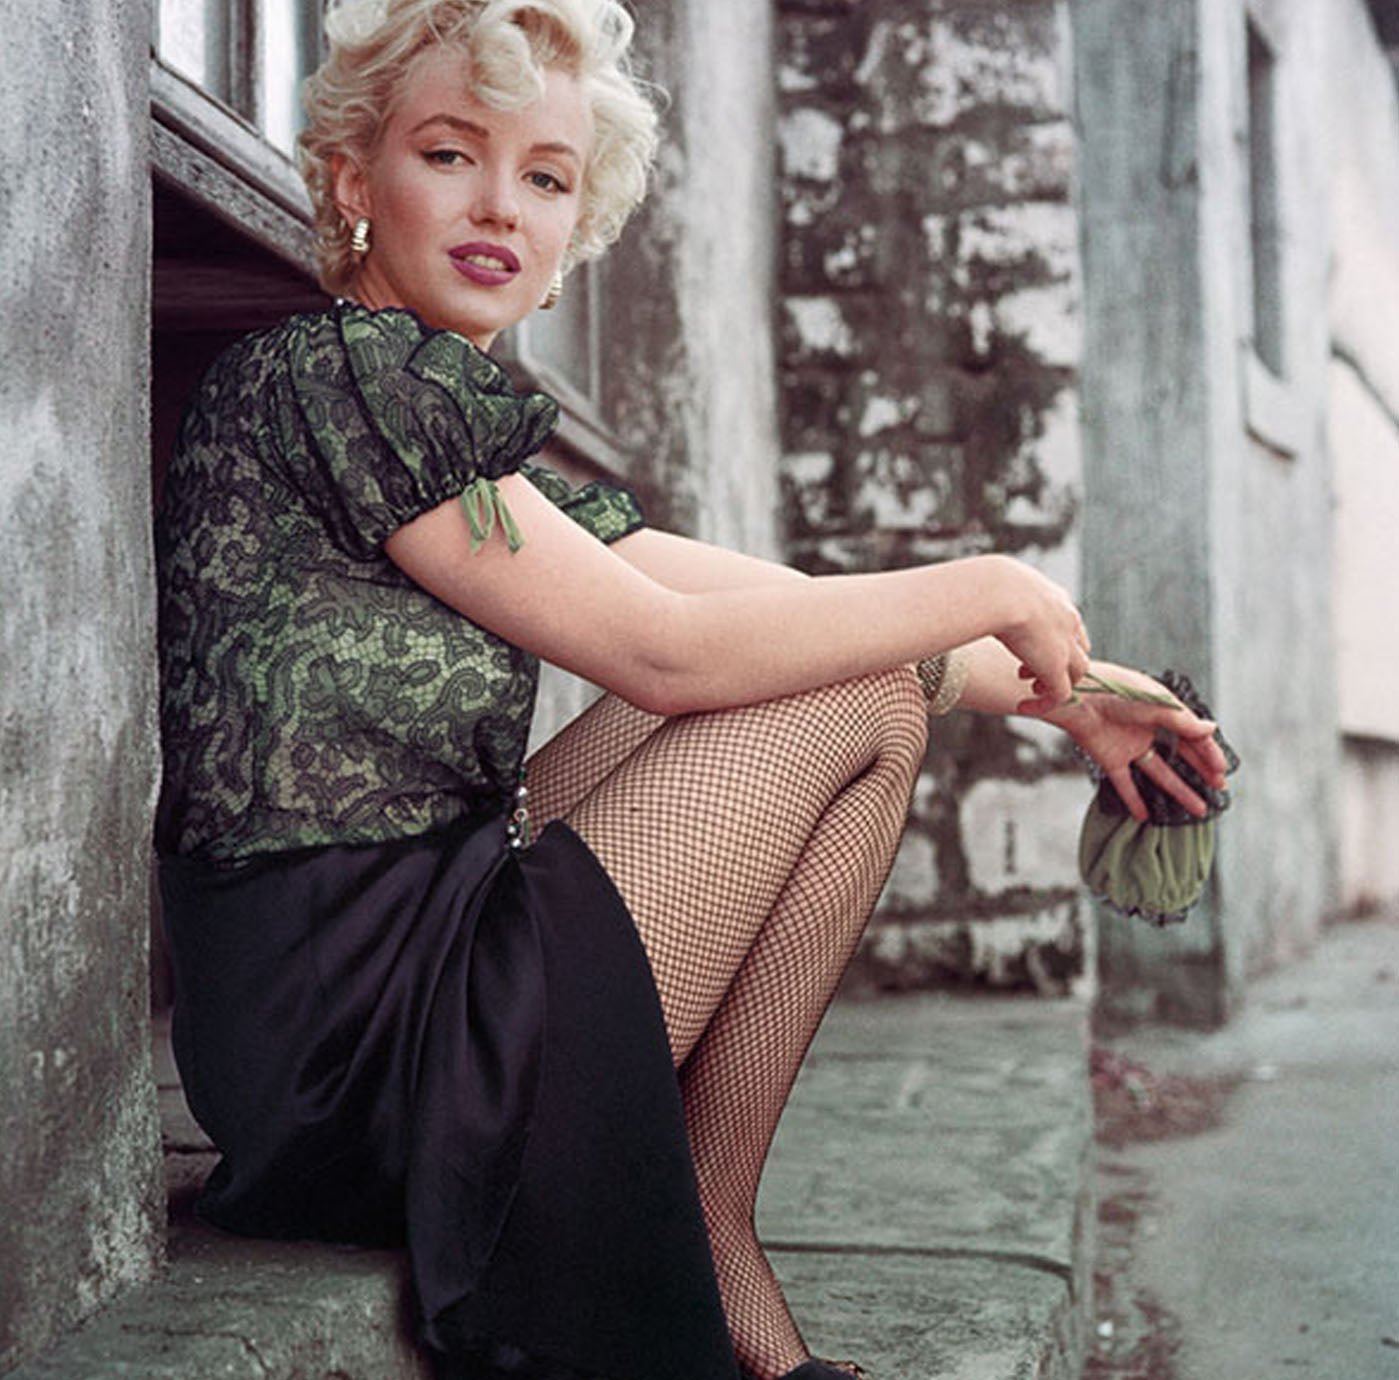 Copy of Marilyn Monroe 1956